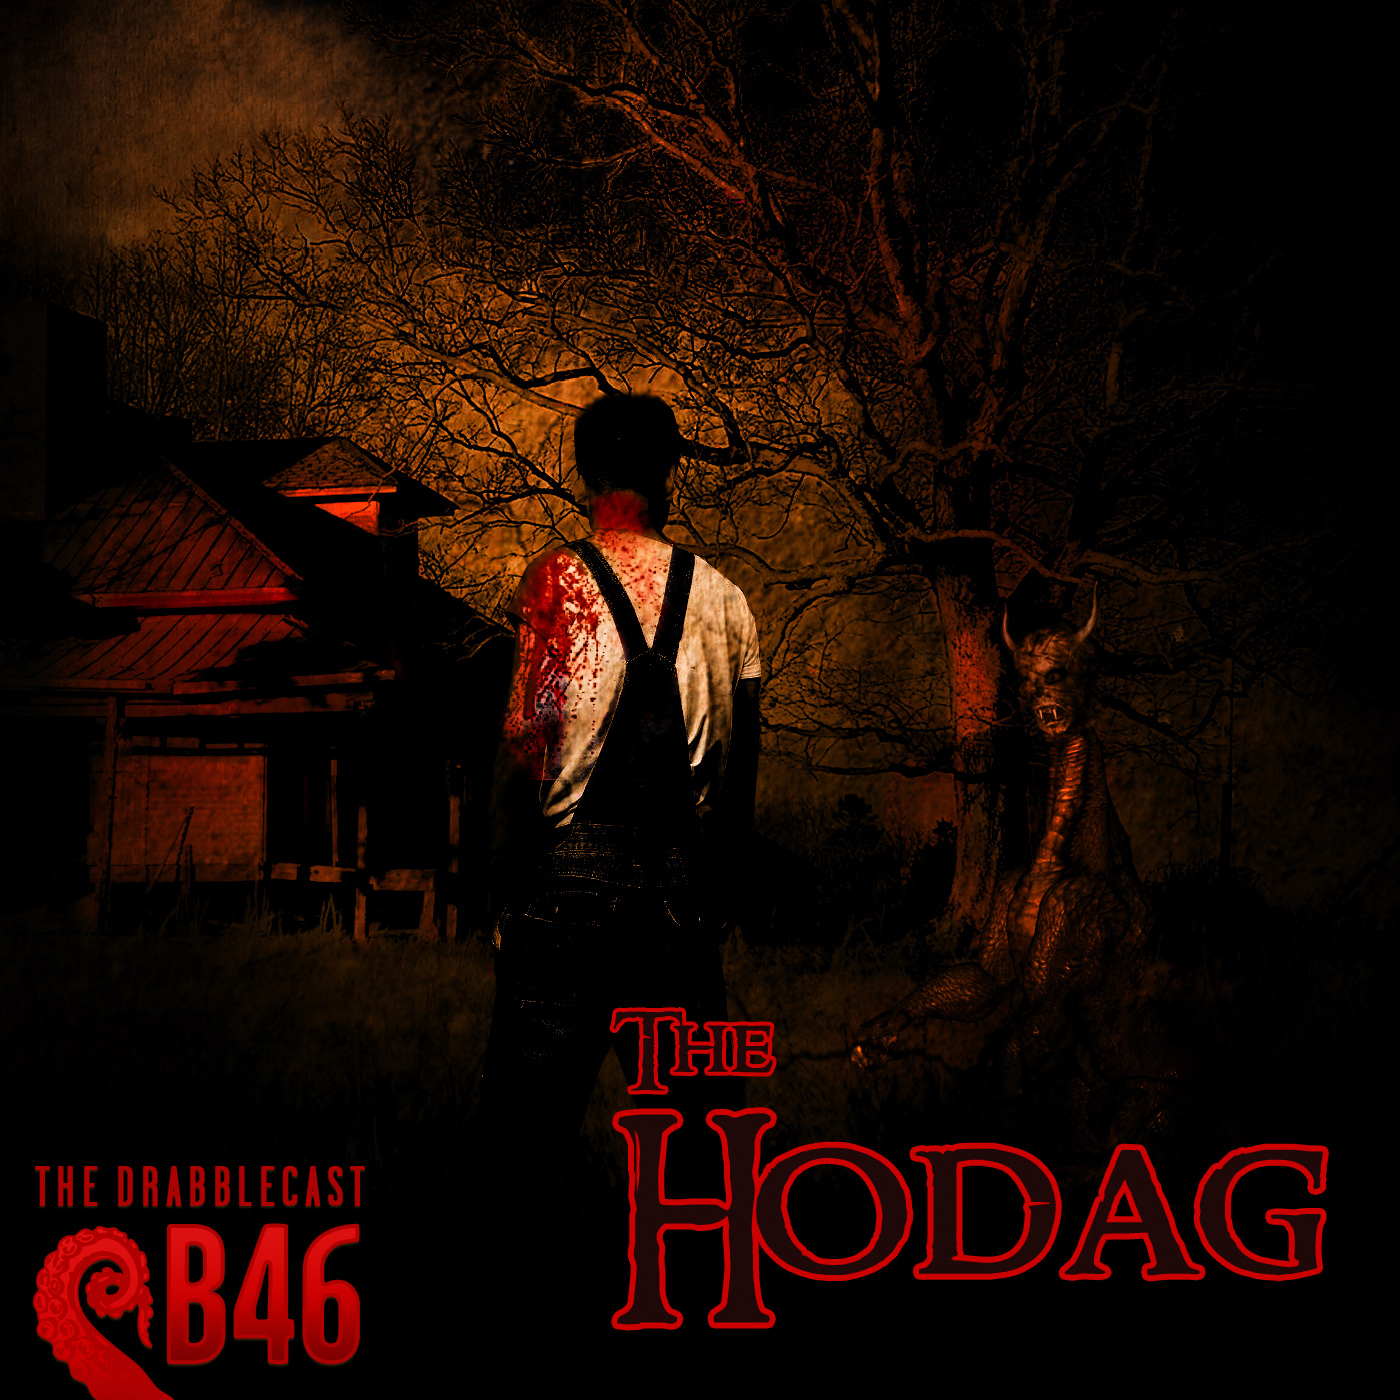 Cover for Drabblecast B-sides 46, The Hodag, by Richard K. Green